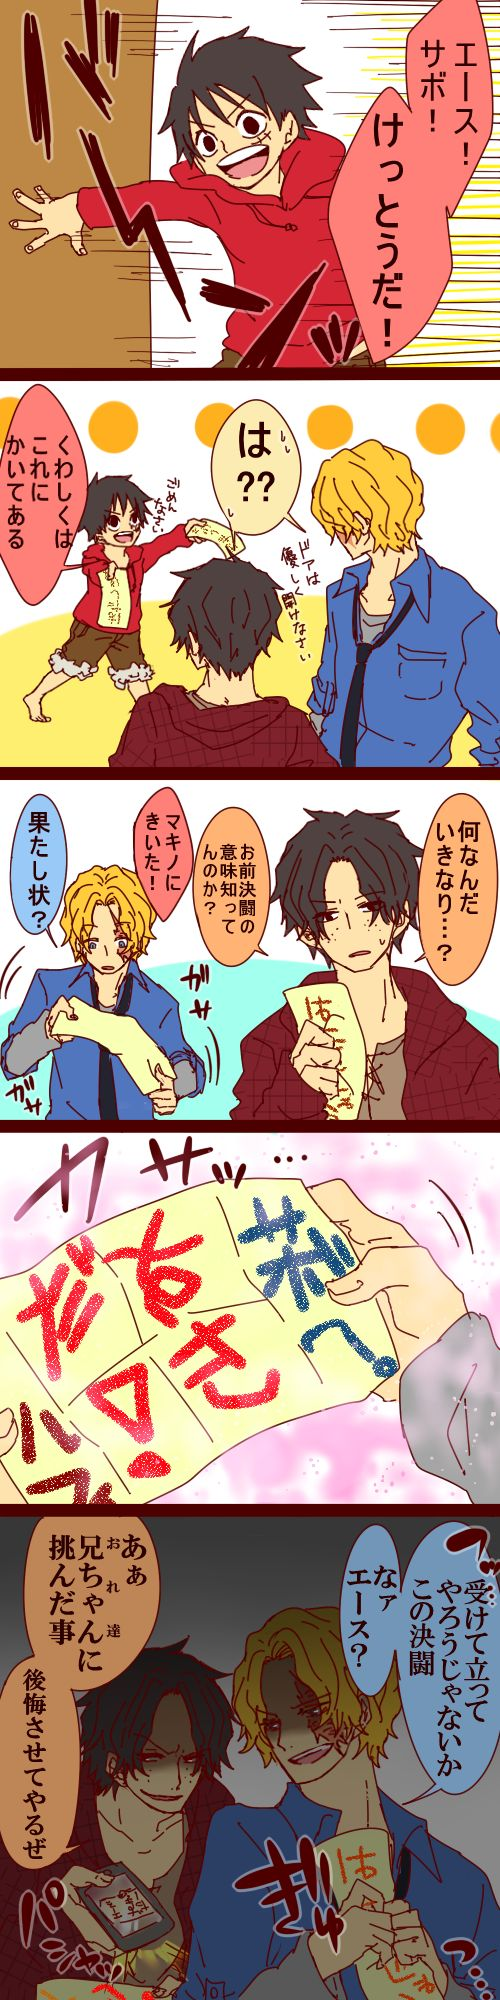 Love letter for the doting older brothers - Ace, Sabo & Luffy